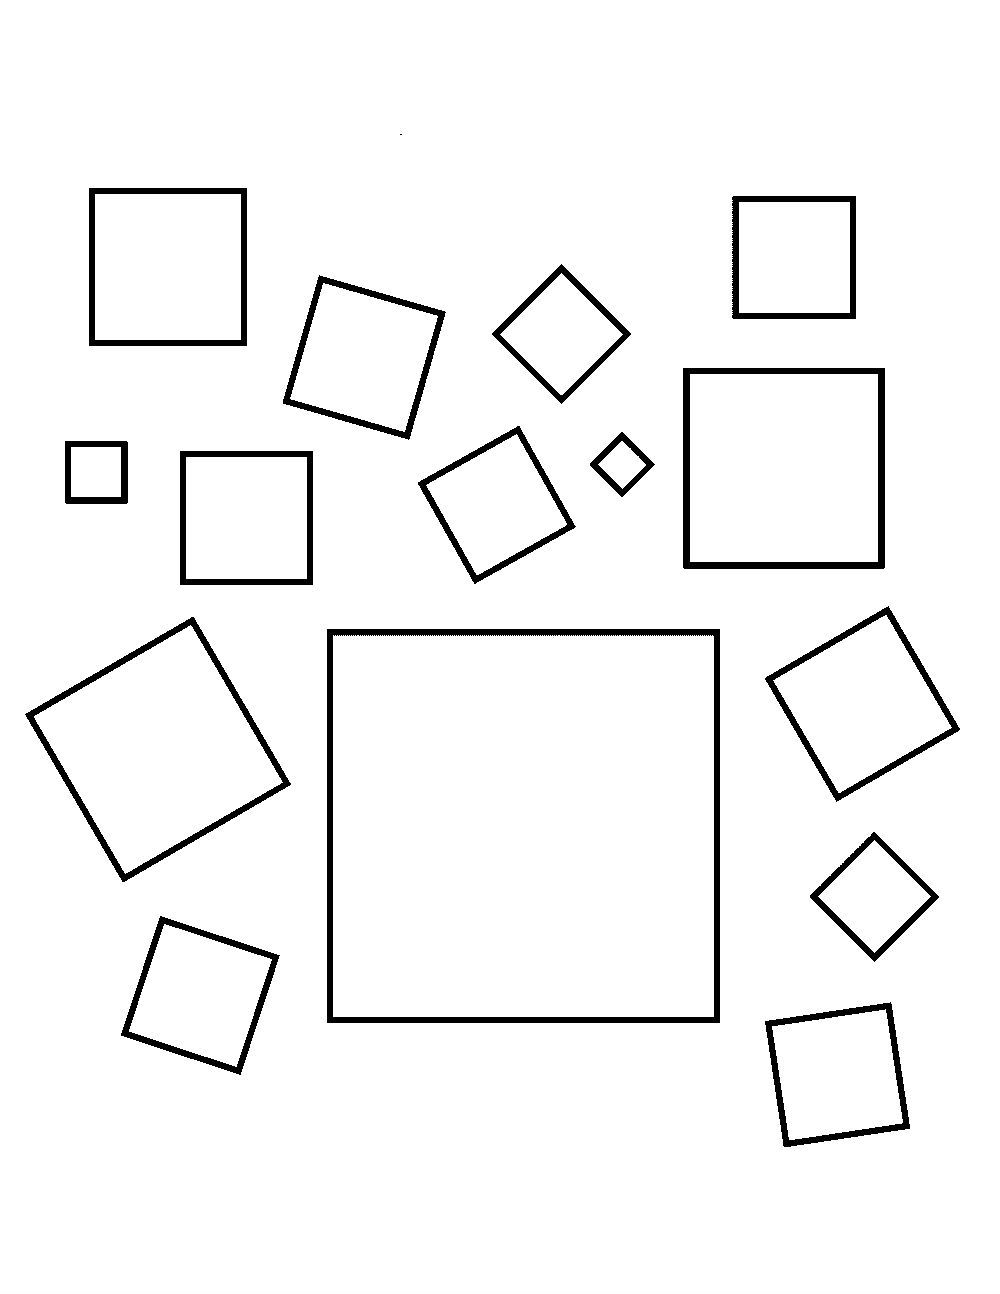 Shapes Squares Coloring Pages For Kids Ee1 Printable Shapes Coloring Pages For Kids